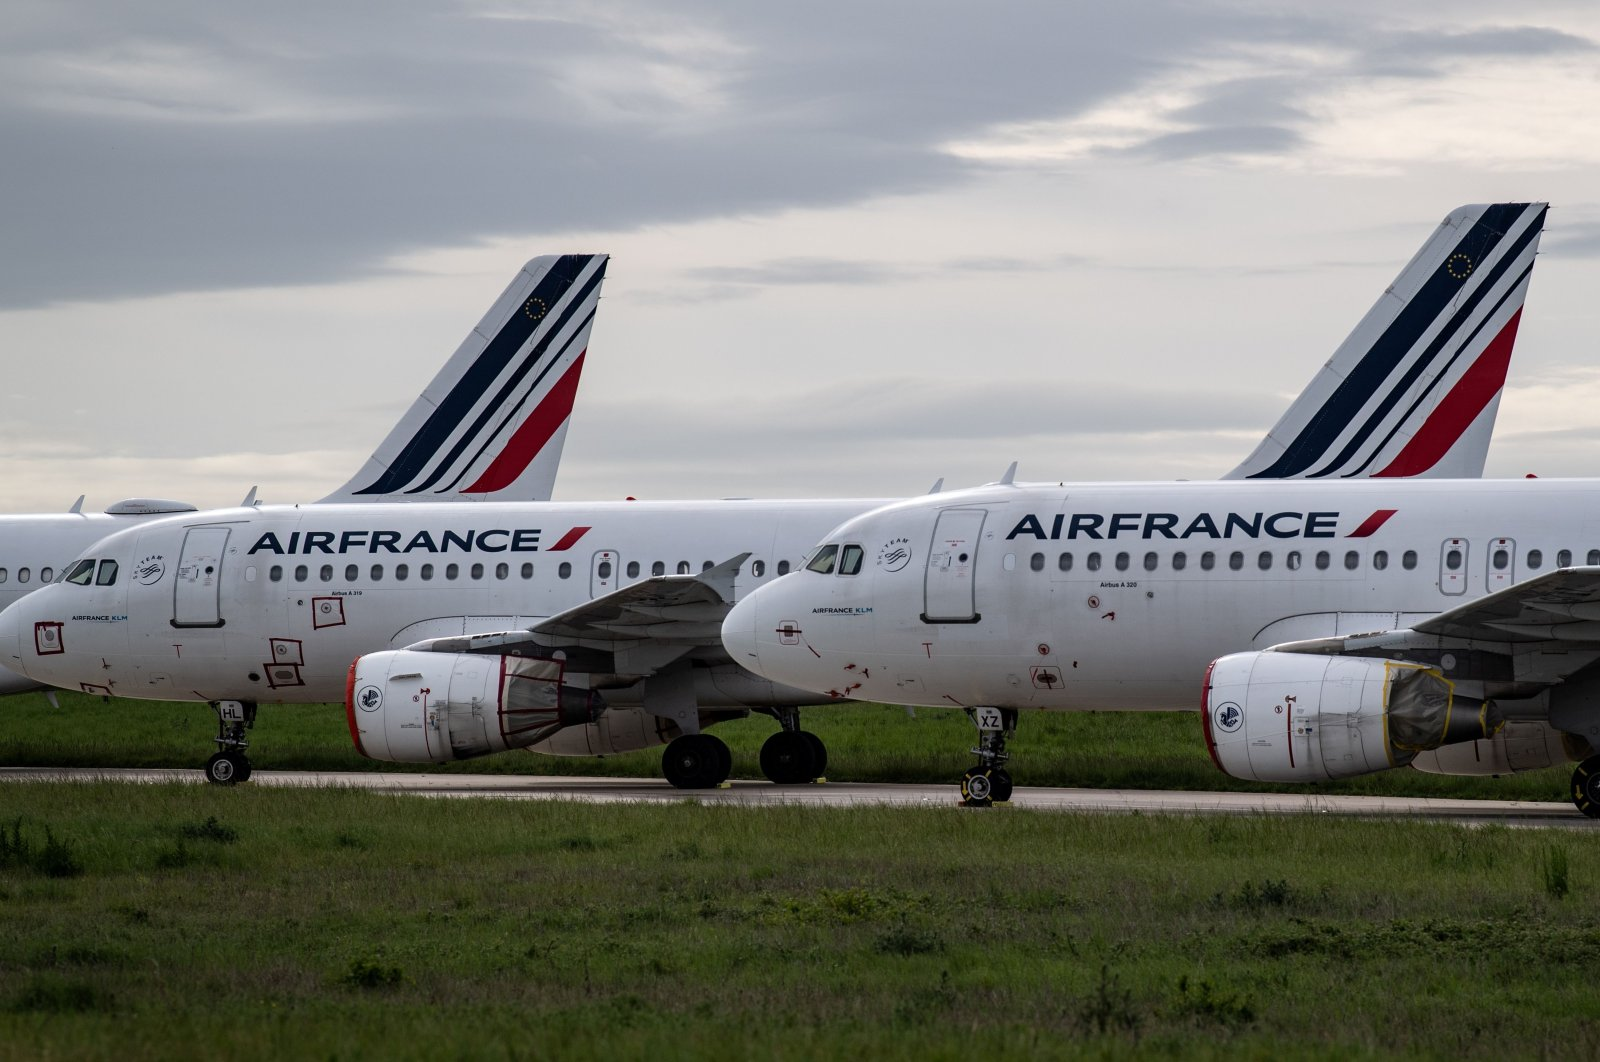 Air France planes are parked on the tarmac at Paris Charles de Gaulle Airport in Roissy, France, on the 45th day of the coronavirus lockdown, April 30, 2020. (AFP Photo)